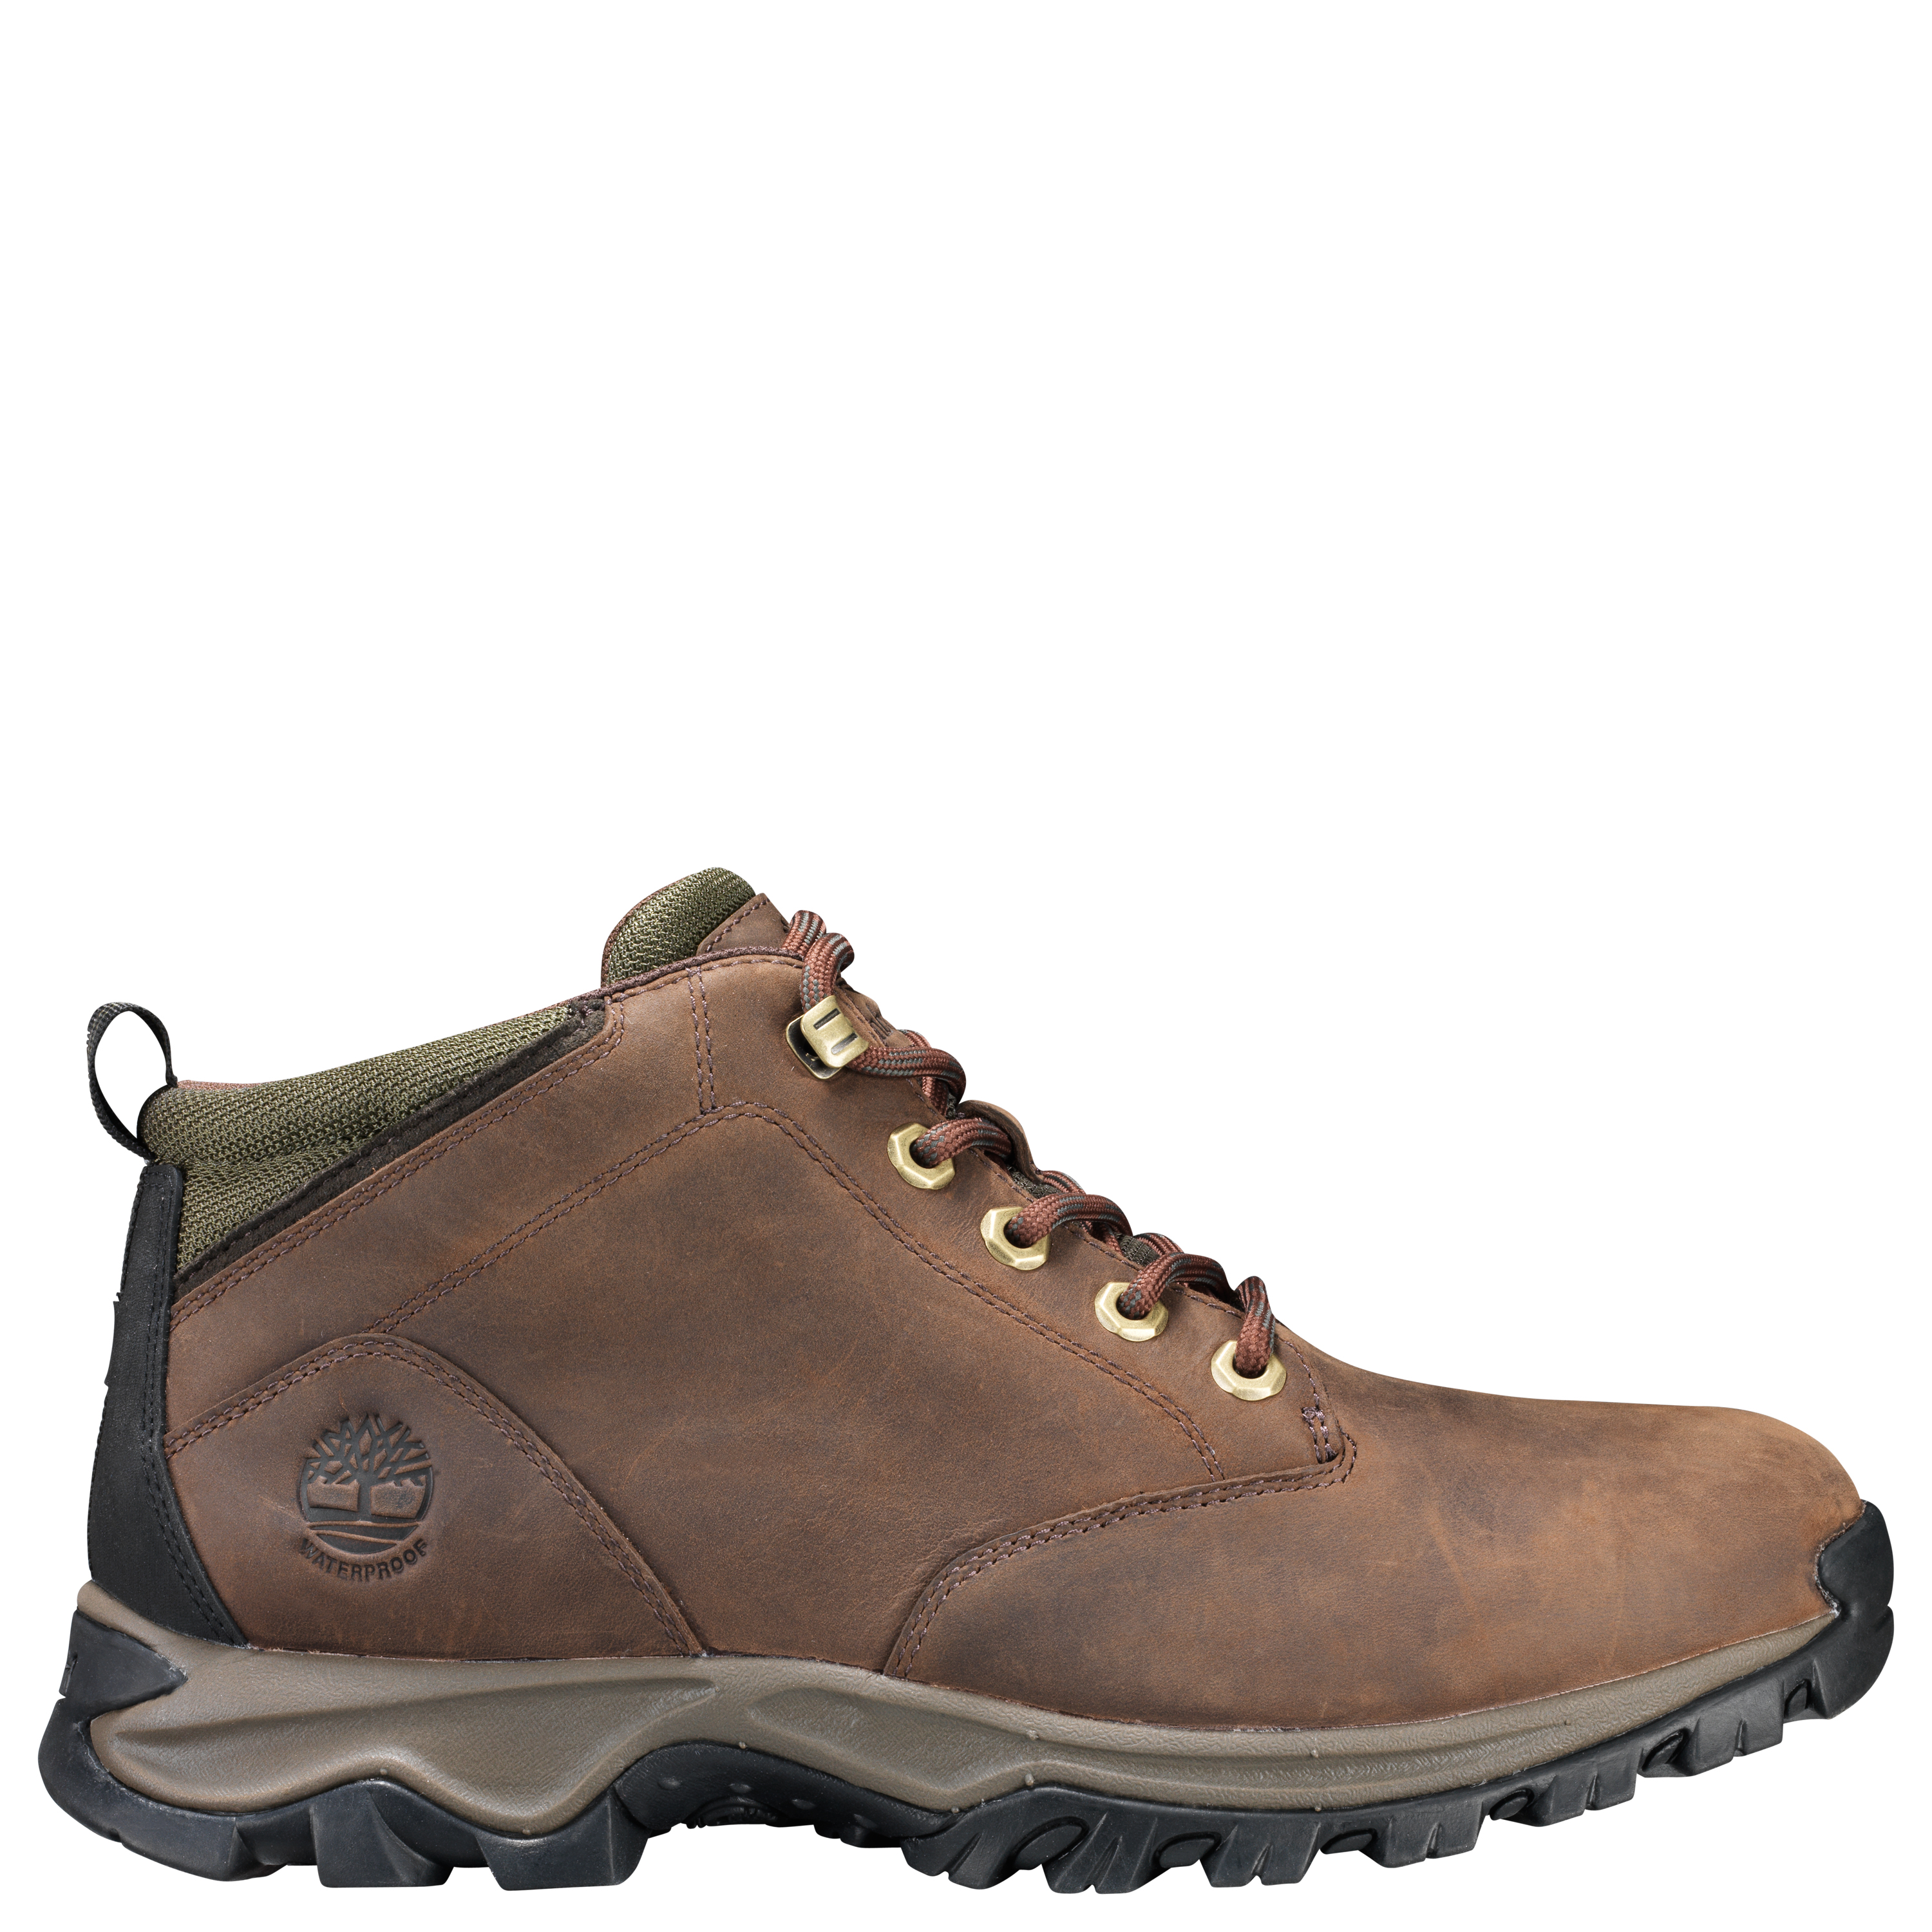 c27a0a1c5e1 Timberland Mt. Maddsen Chukka WP - Mens with Free S&H — CampSaver